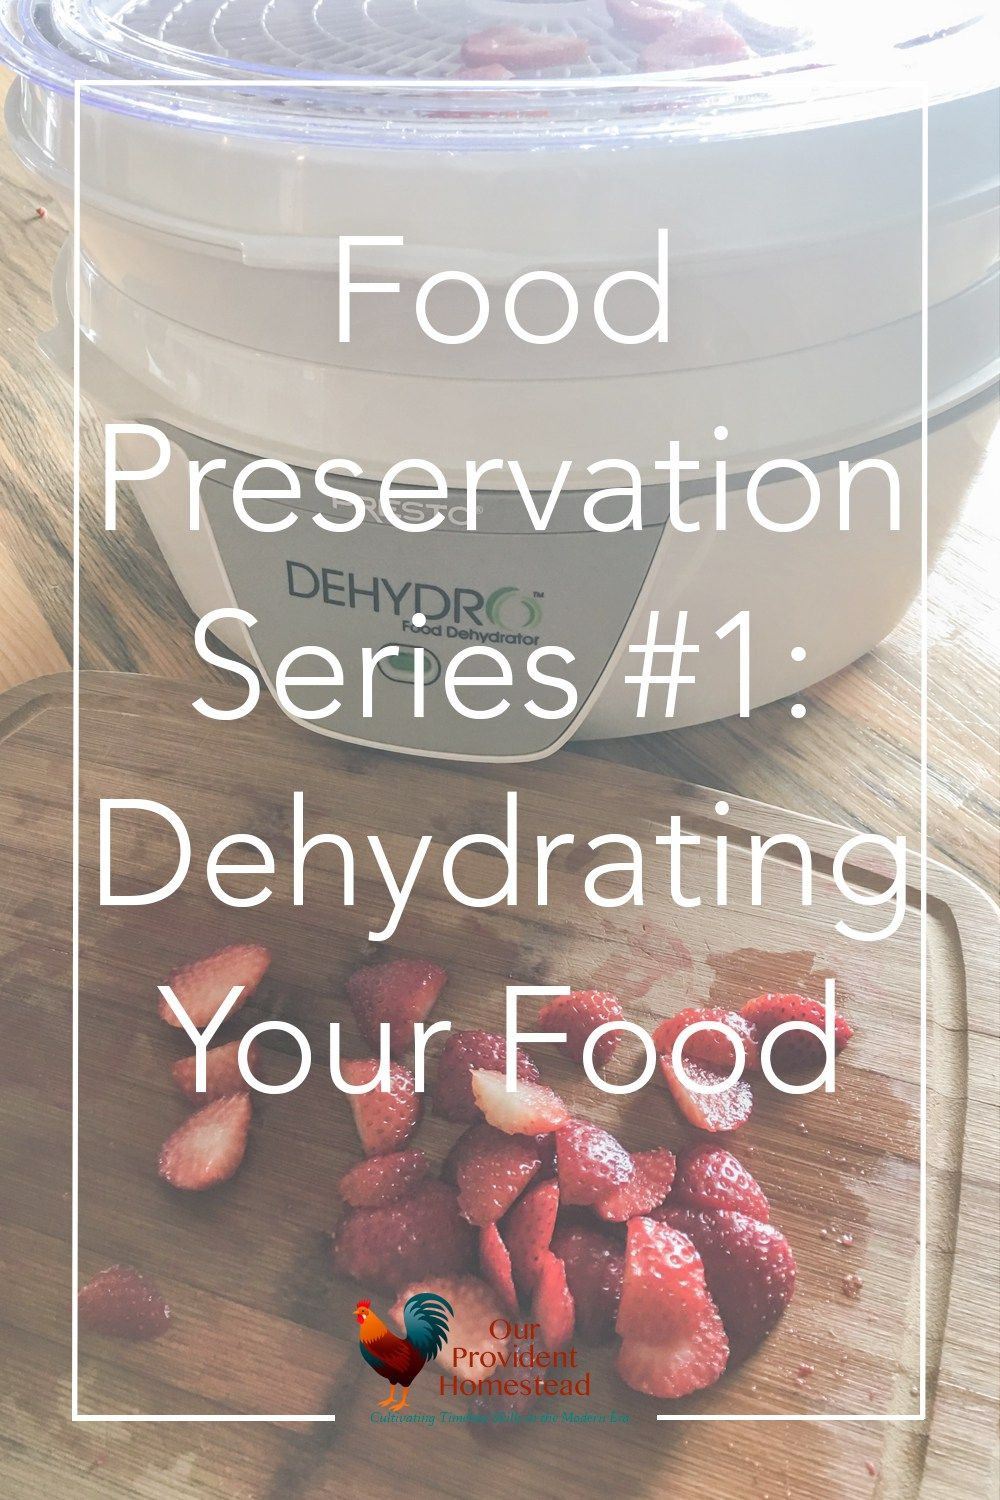 Food Preservation Series 1 Dehydrating Your Food